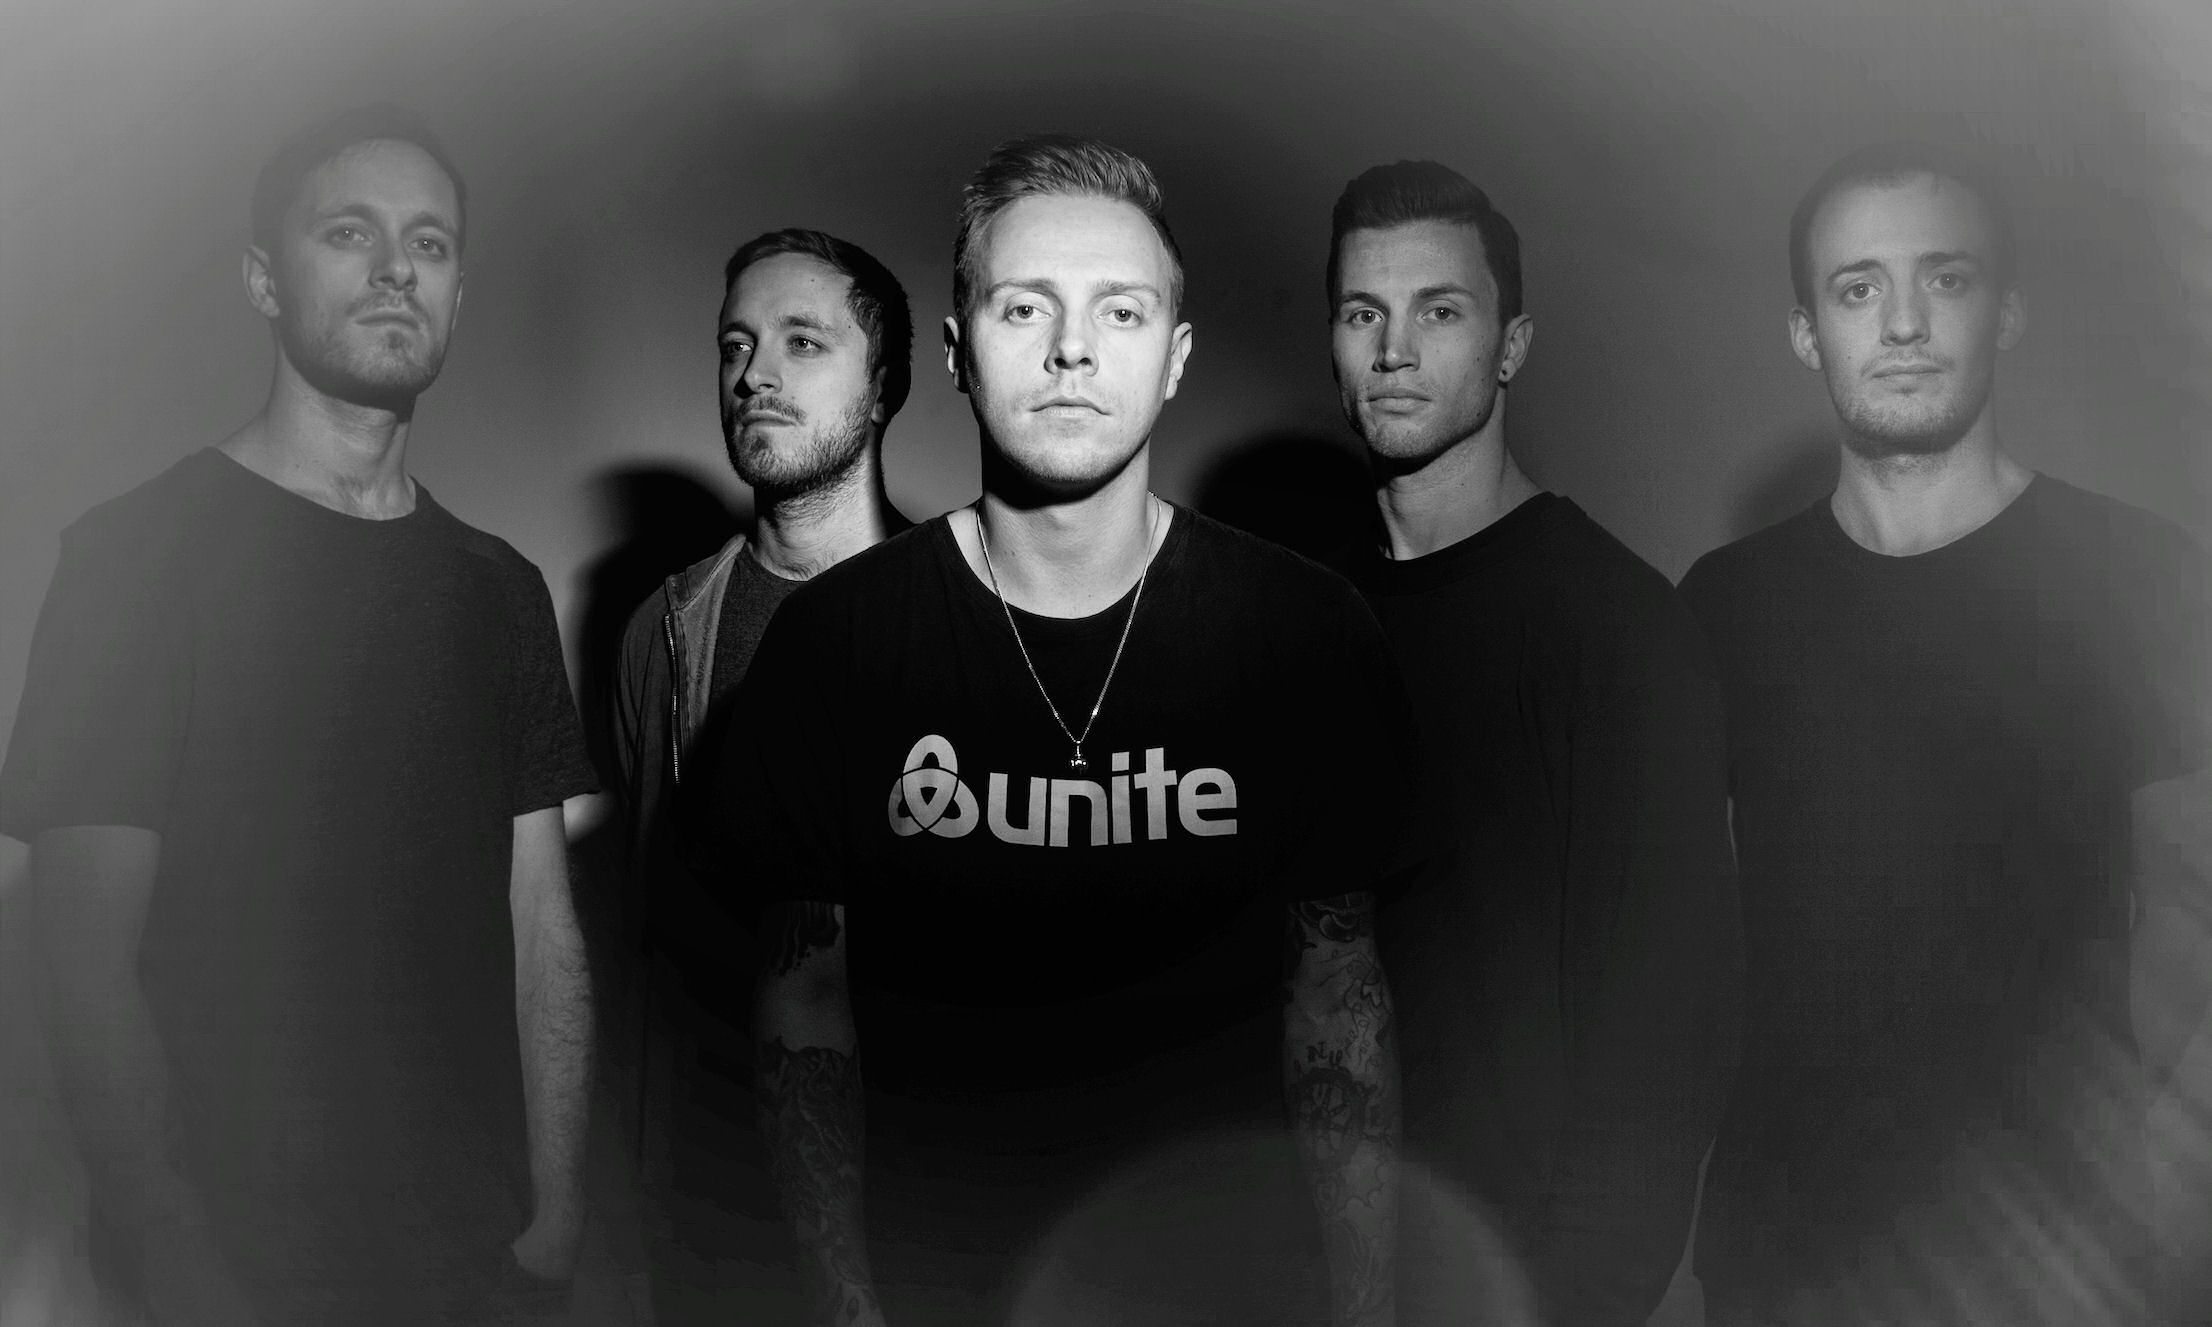 Architects article preview, Architects, Sam Carter, Alex Dean, Adam Christianson, Dan Searle, Tom Searle, Nightmares, Ruin, Hollow Crown , The Here and Now , Daybreaker, Epitaph Records, All Our Gods Have Abandoned Us, Nihilist, Deathwish, Phantom Fear , Downfall , Gone With The Wind, The Empty Hourglass , A Match Made in Heaven , Gravity, All Love is Lost , From The Wilderness, Memento Mori , Alan Watts, Architects Uk, Architects band, metalcore, progressive metalcore, screaming estremo, fry screaming, mid range growl, albums, sickandsound